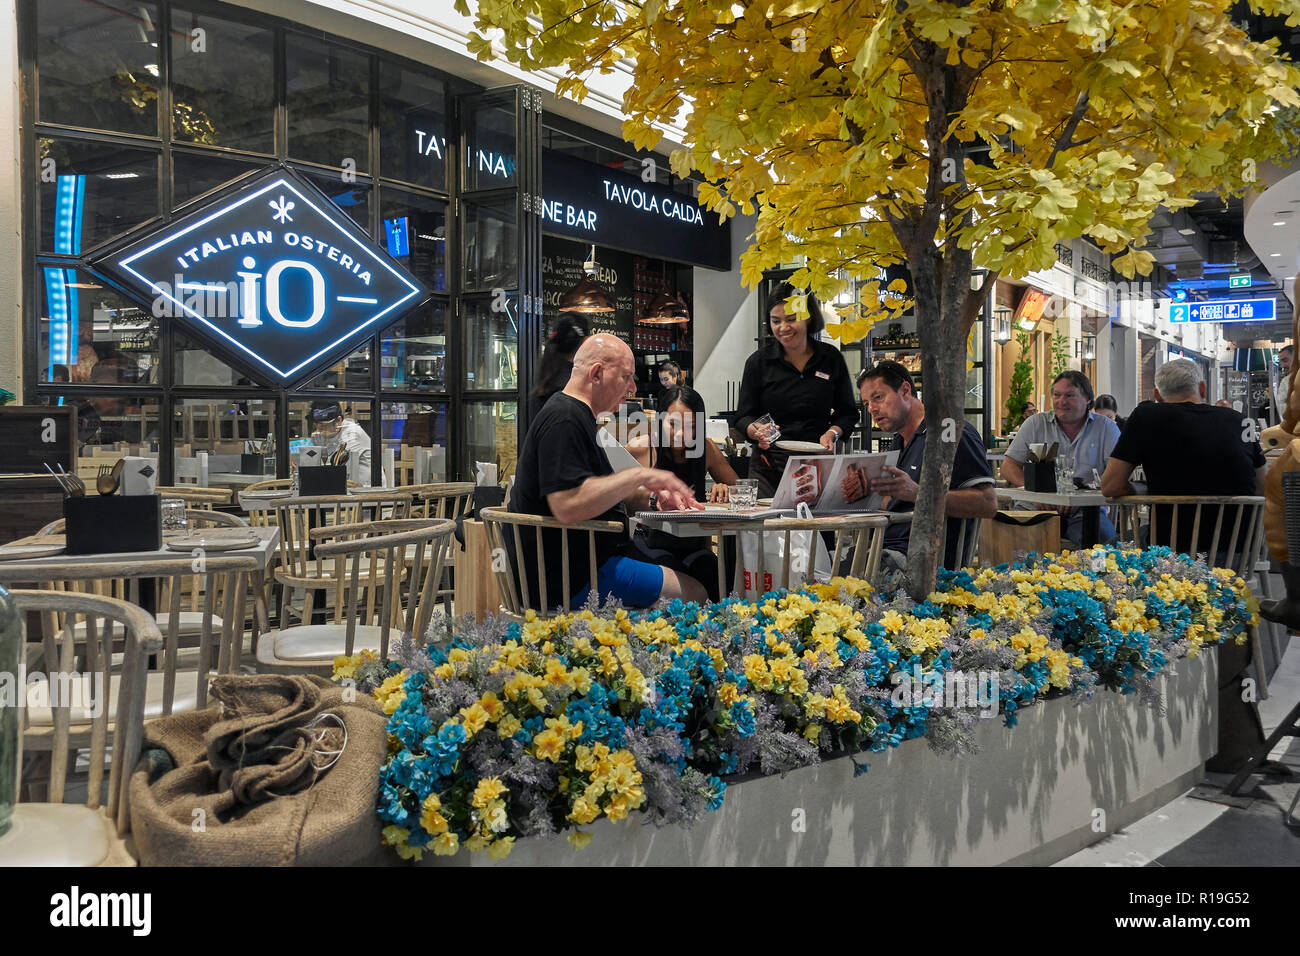 Italian Restaurant Exterior Terminal 21 Pattaya Stock Photo Alamy